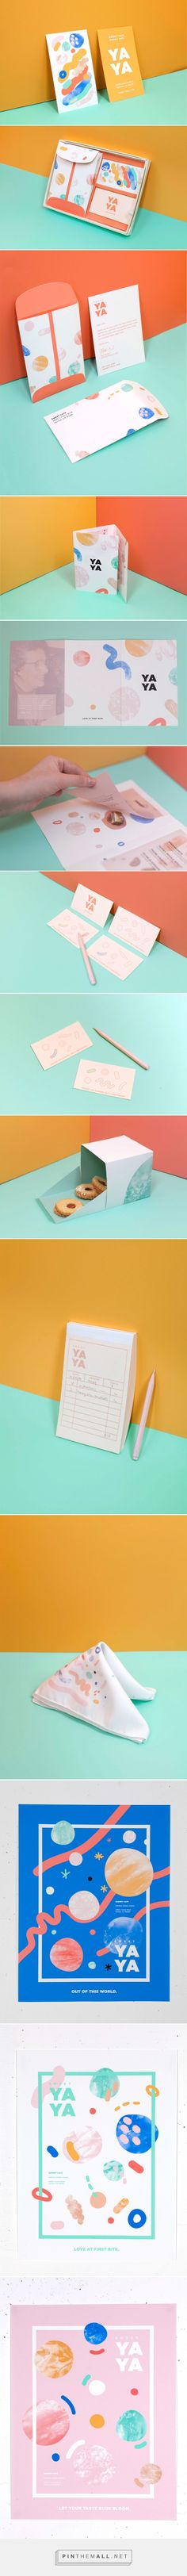 Sweet Yaya Bakery Branding by Sara Haas Fivestar Branding Agency – Design and Branding Agency & Curated Inspiration Gallery Corporate Design, Brand Identity Design, Graphic Design Branding, Stationery Design, Design Agency, Brochure Design, Typography Design, Packaging Design, Lettering